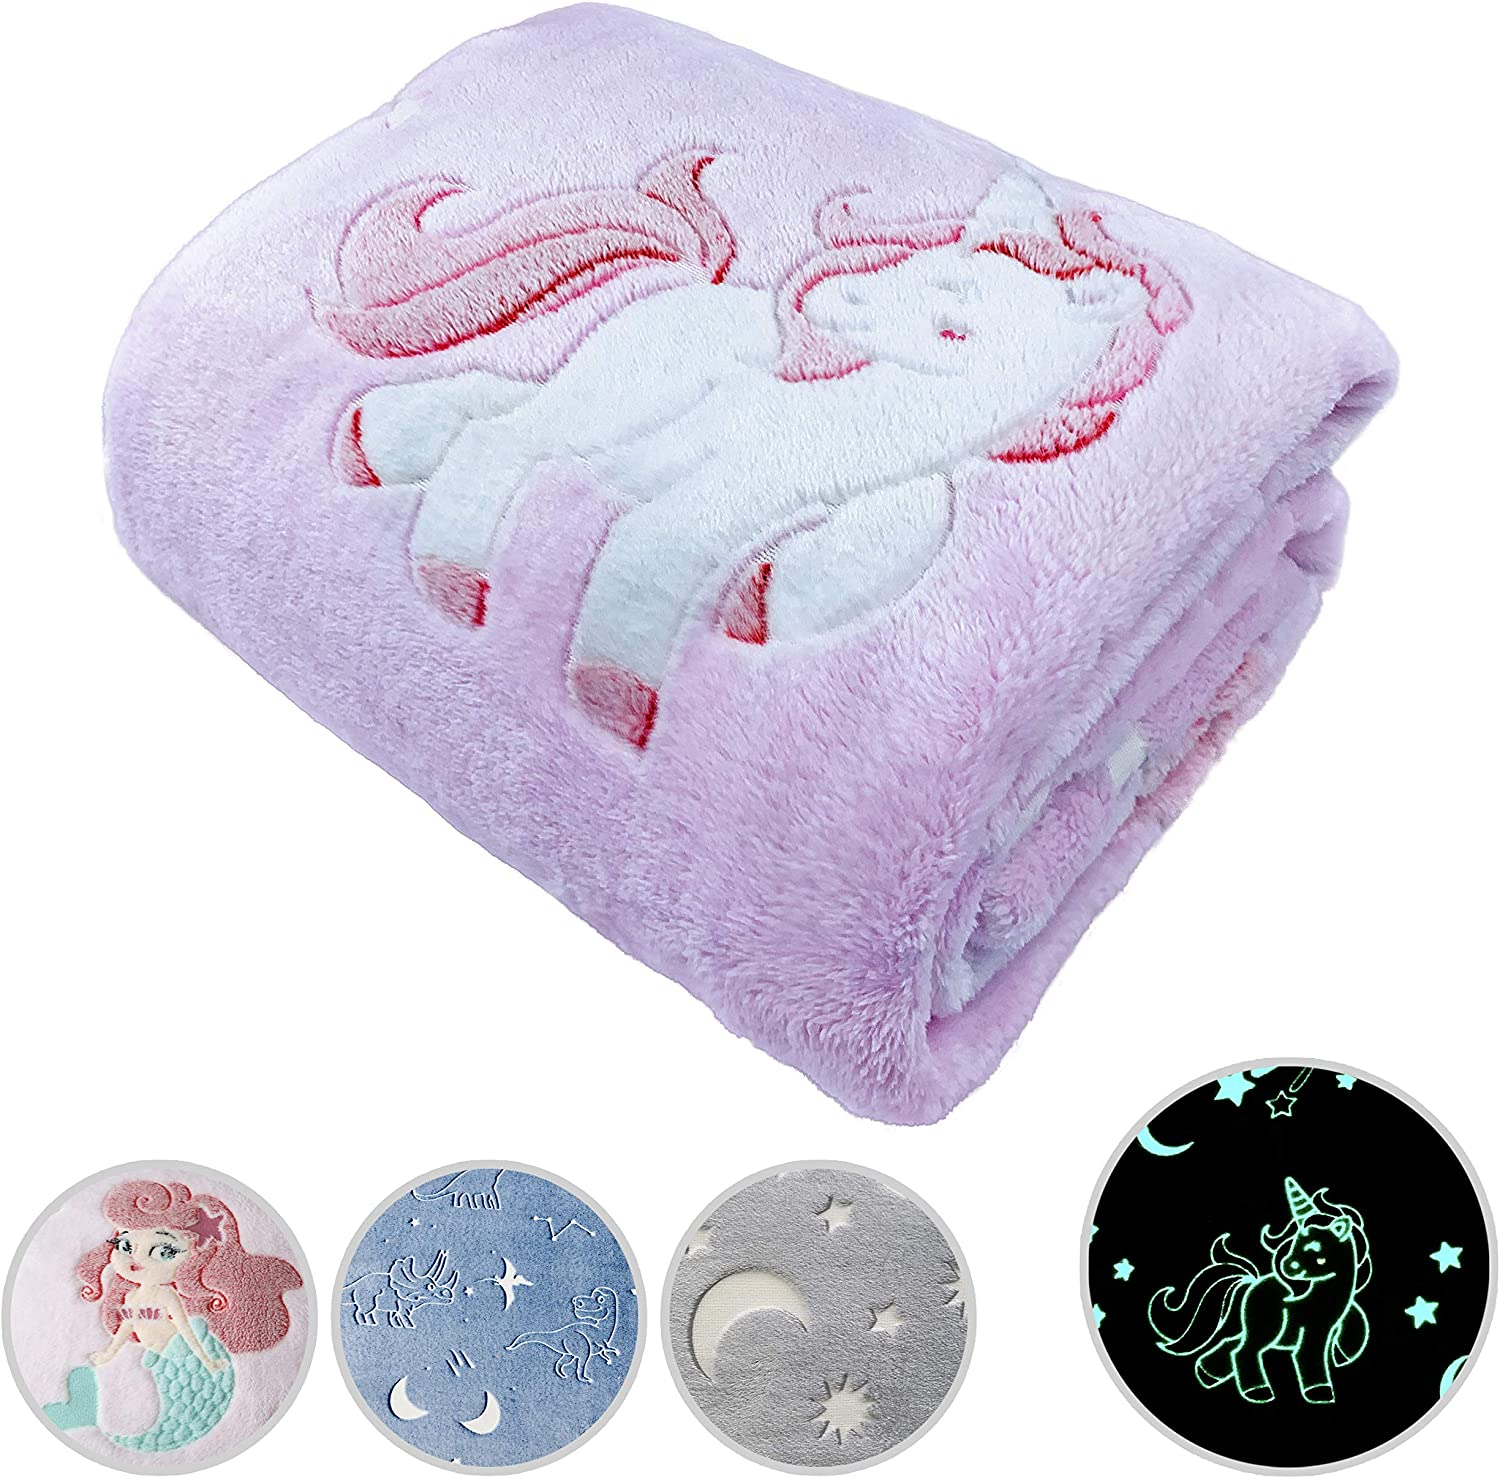 Glow in The Dark Throw Blanket Max 55% OFF Unicorn Gifts Personalized Pink Bargain sale f